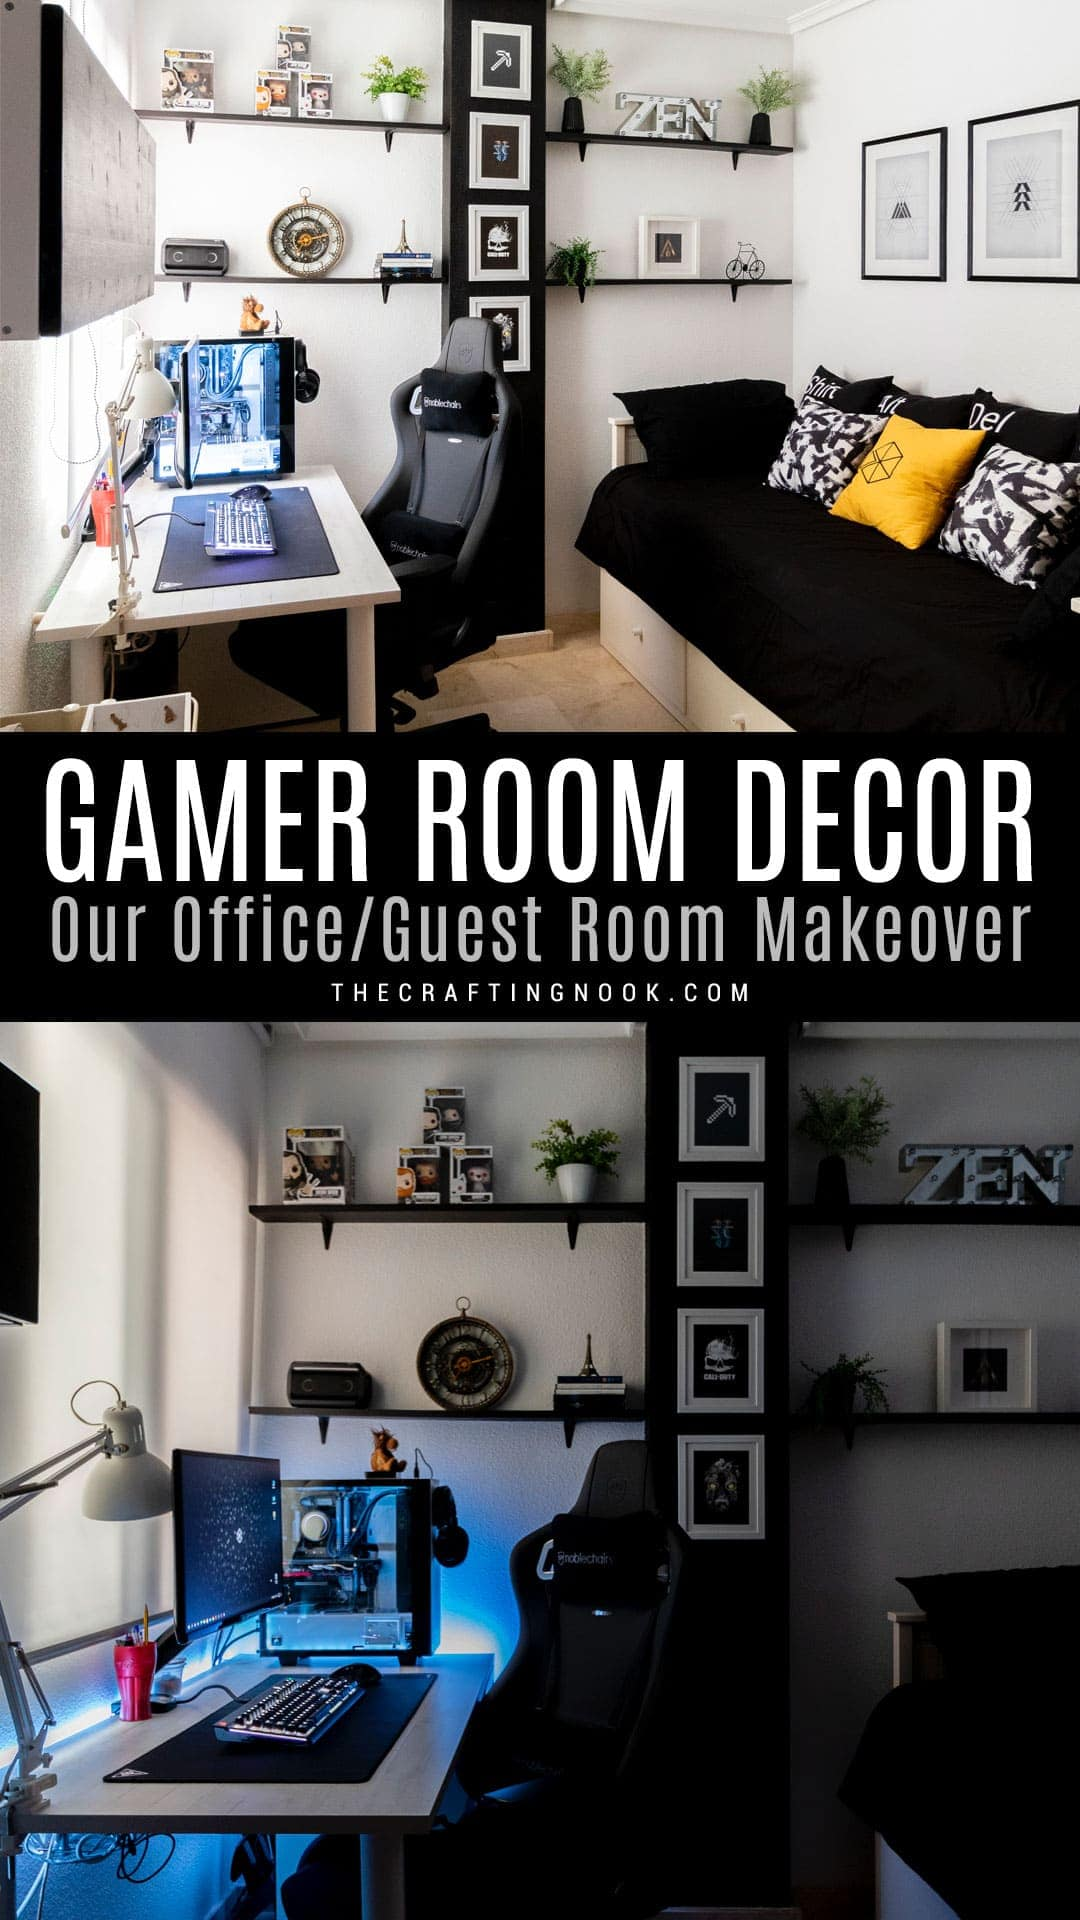 Get inspired to re-decorate your guest/ office room with our Office-Guest Gamer Room Decor Makeover